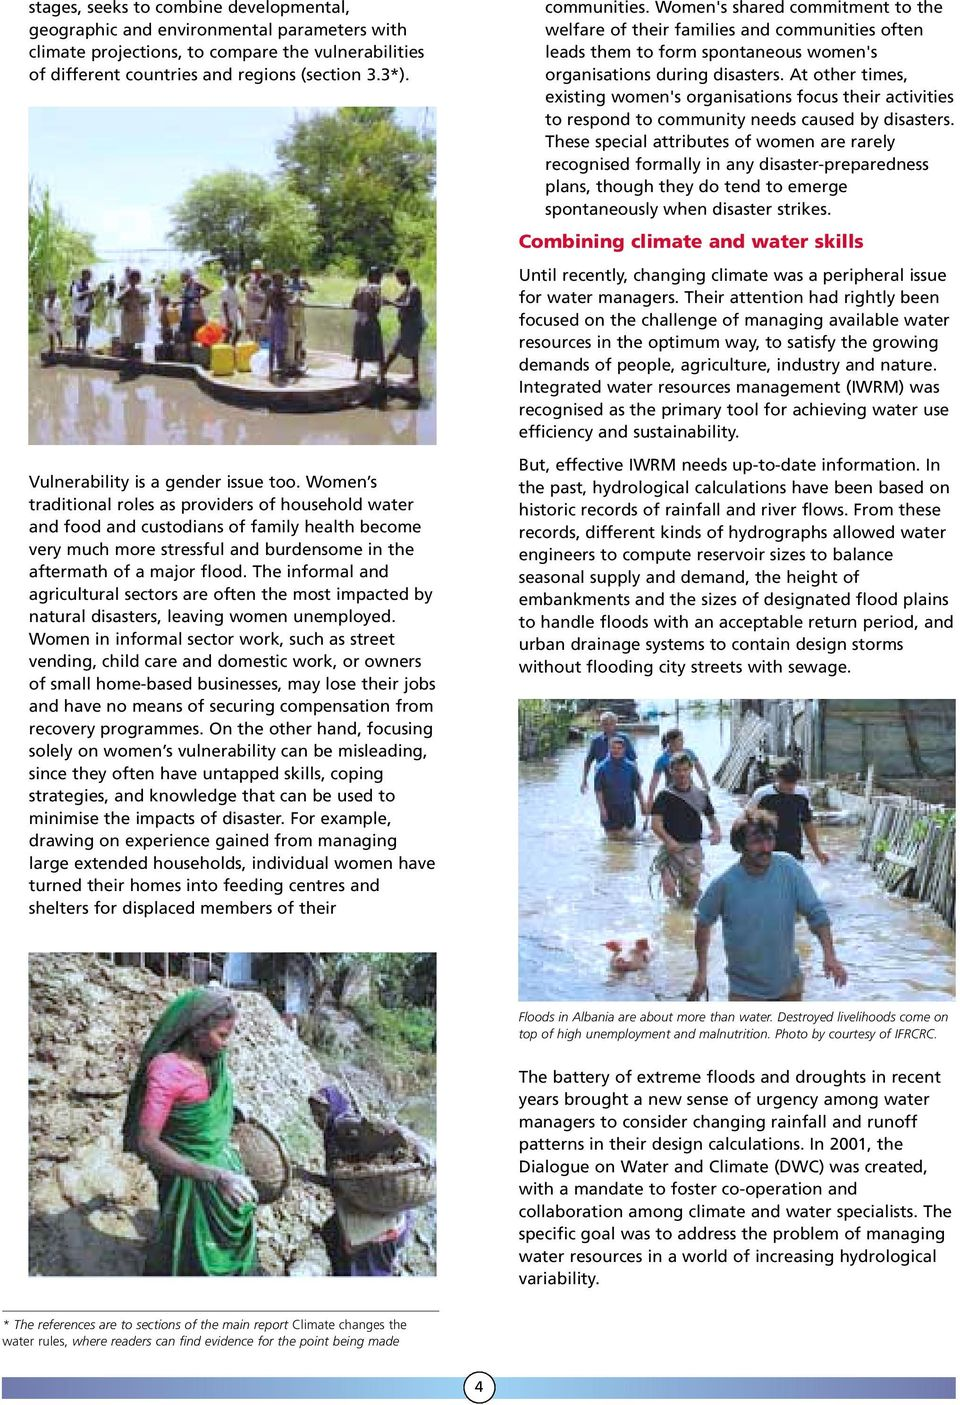 Women s traditional roles as providers of household water and food and custodians of family health become very much more stressful and burdensome in the aftermath of a major flood.